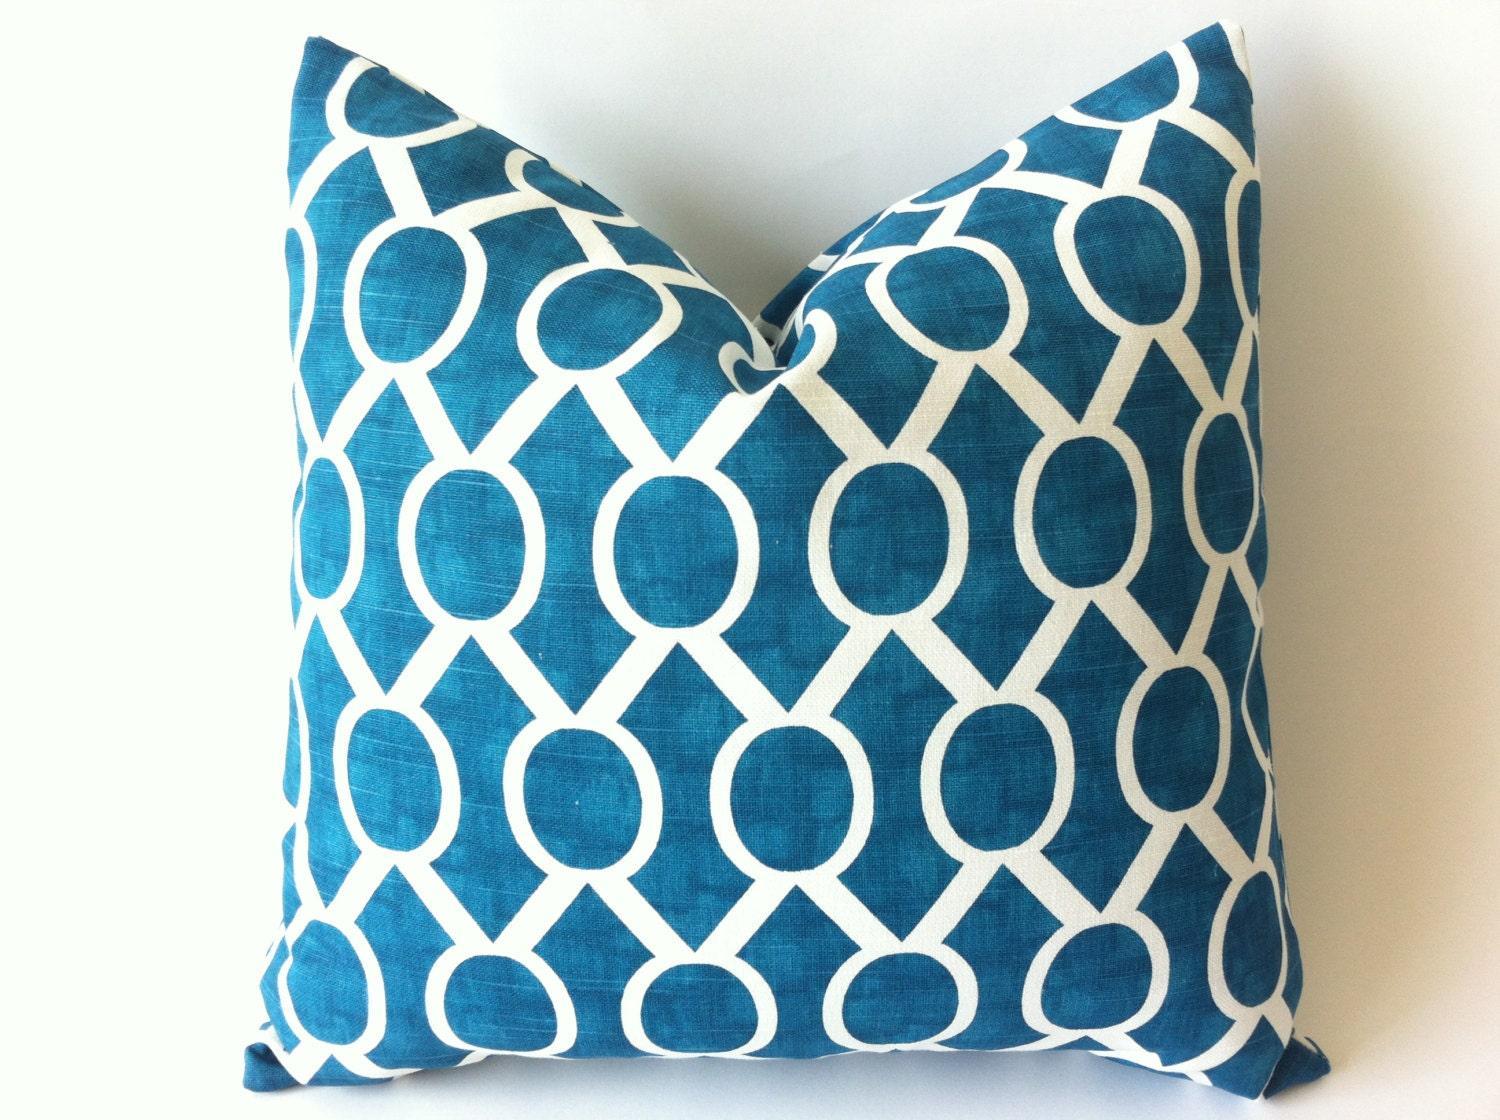 Throw Pillow Covers Teal : One Dark Teal Zipper Pillow Cover Teal Accent Pillow by Pillomatic